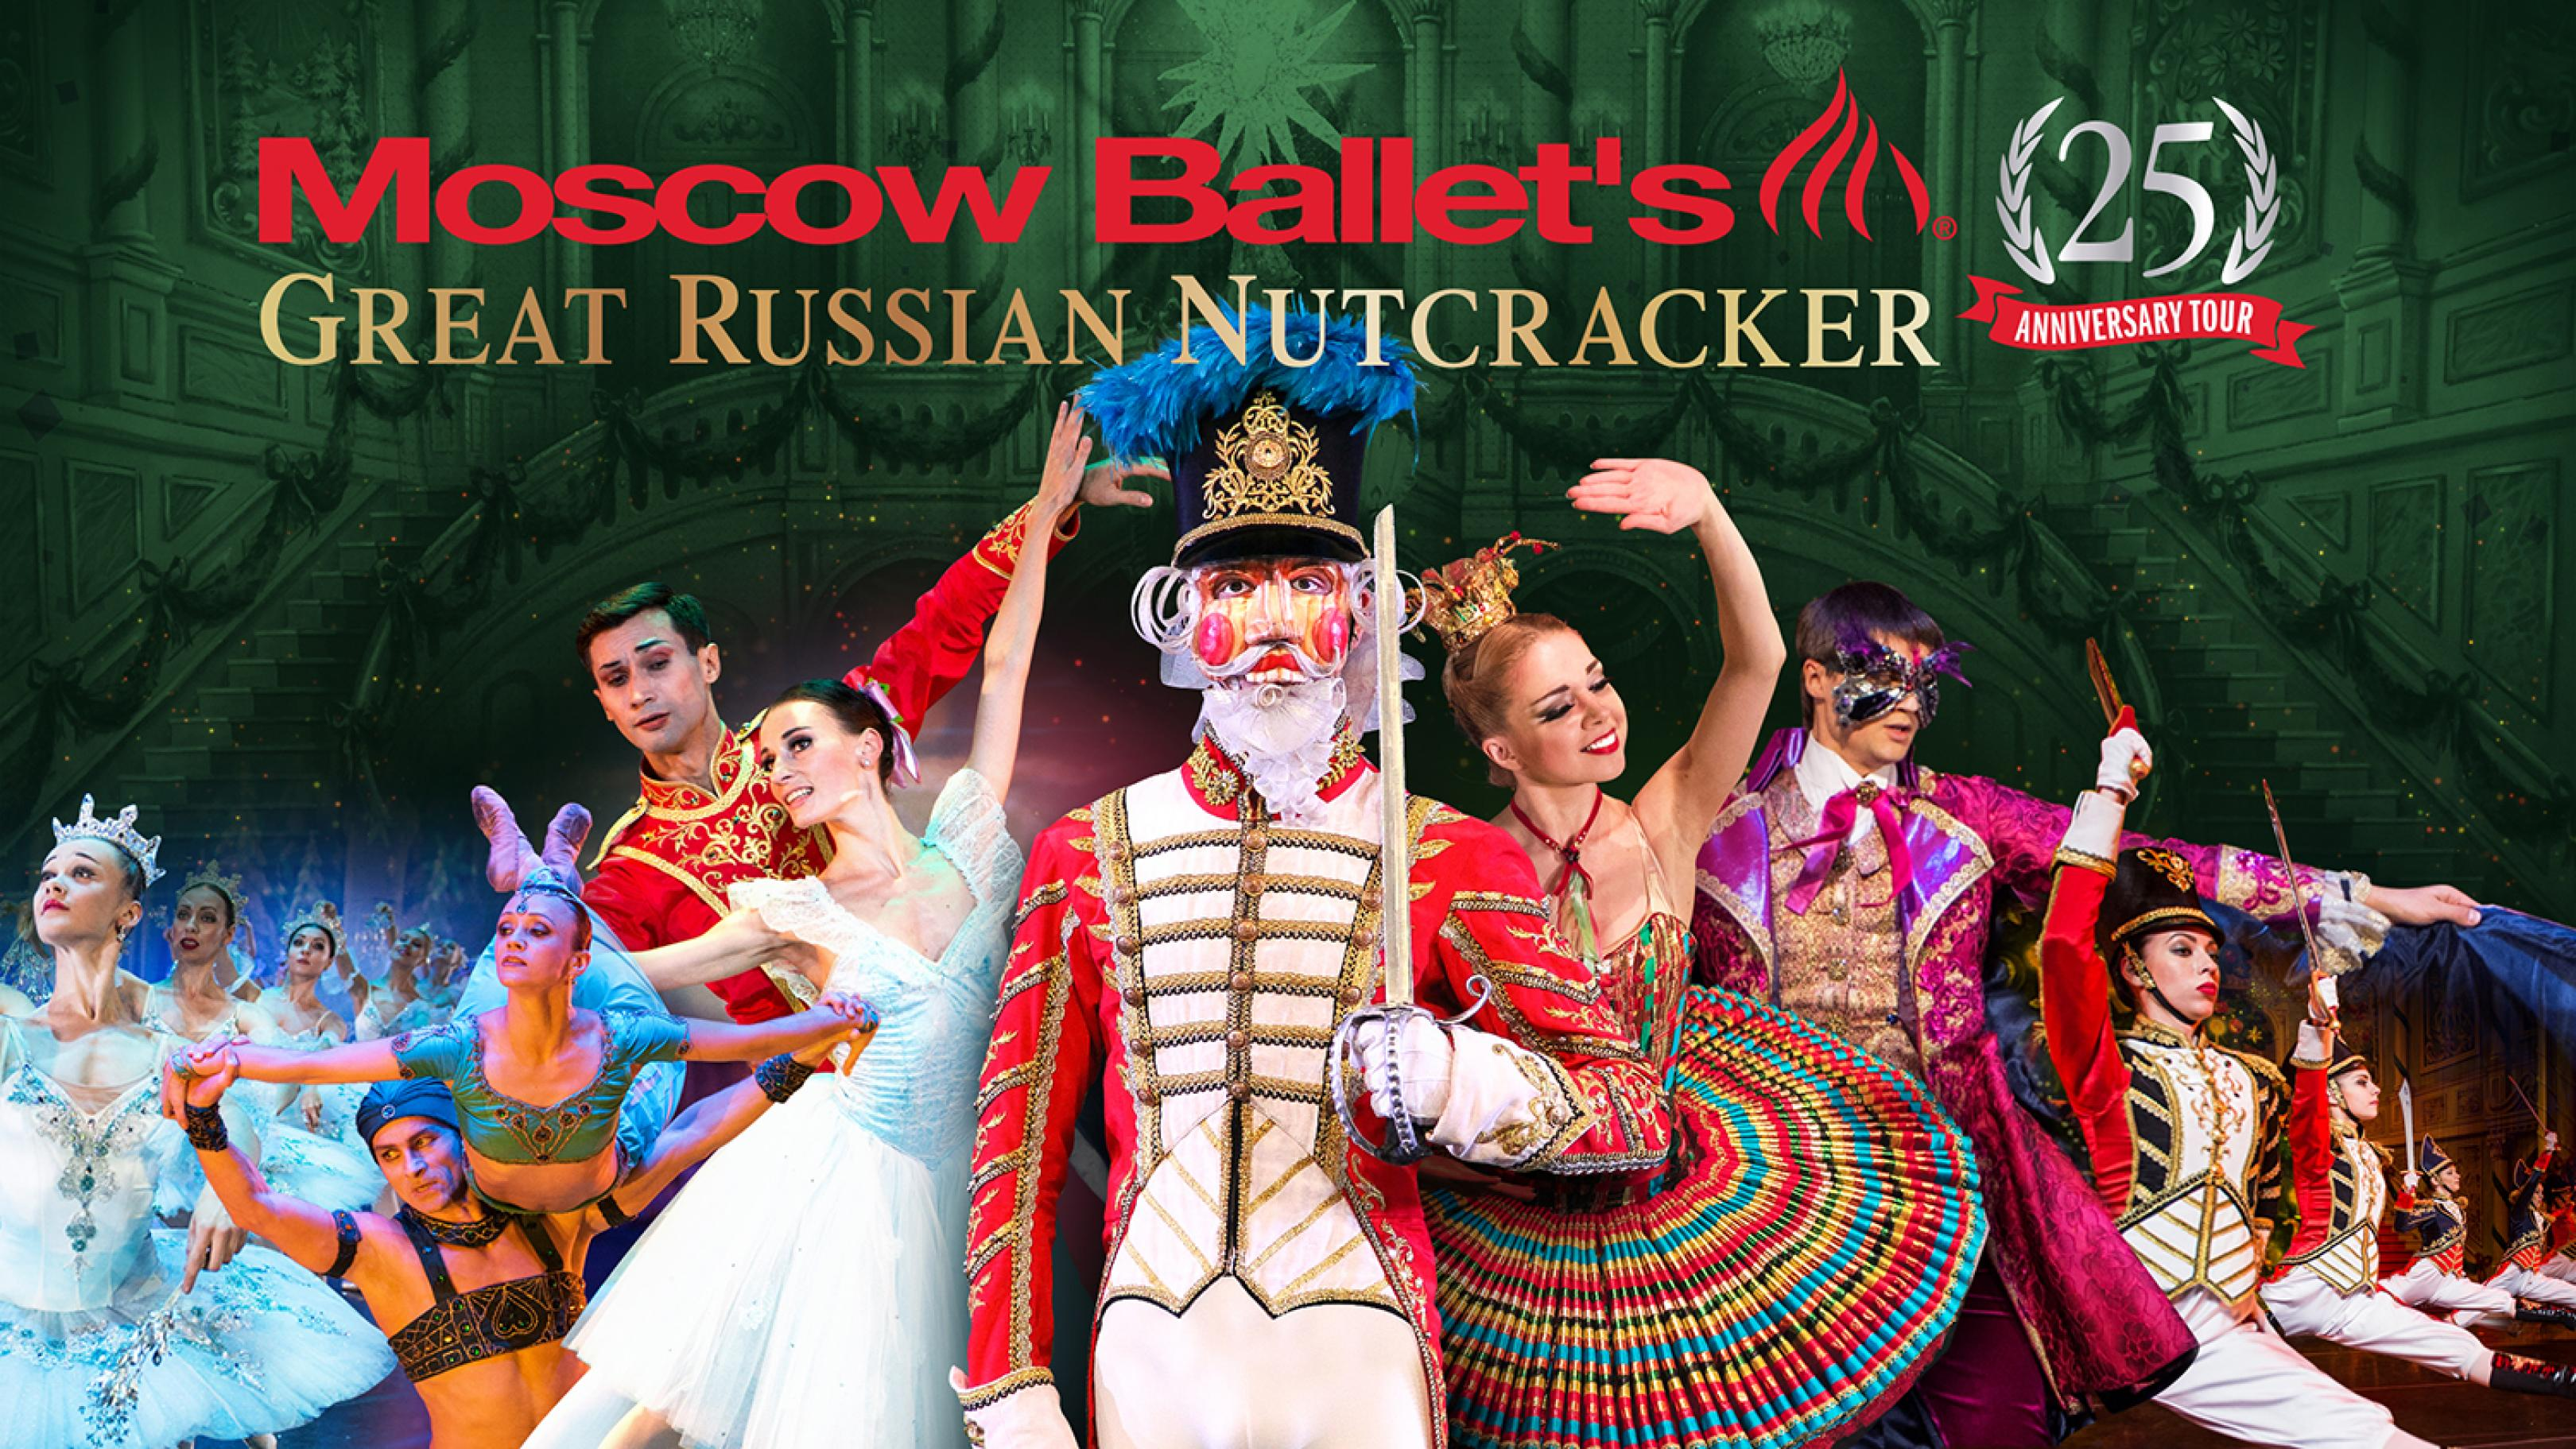 publicity image for Moscow Ballet's Great Russian Nutcracker